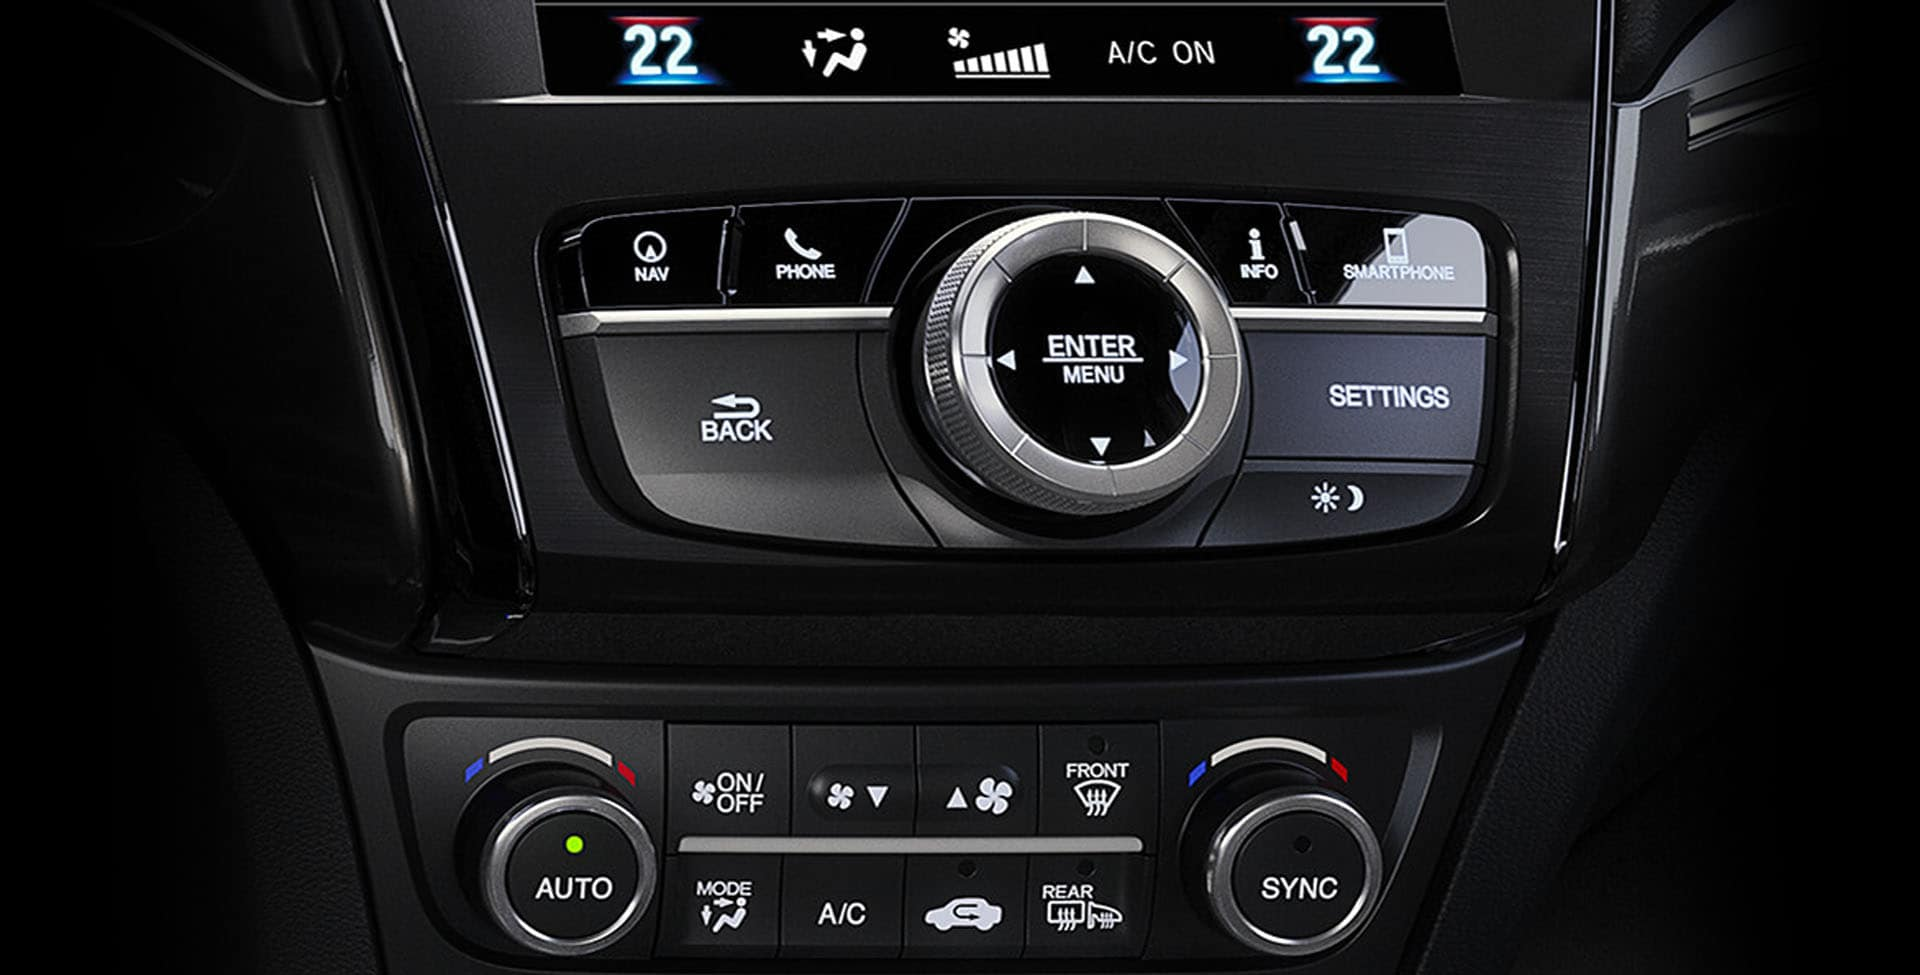 Acura ILX climate control features